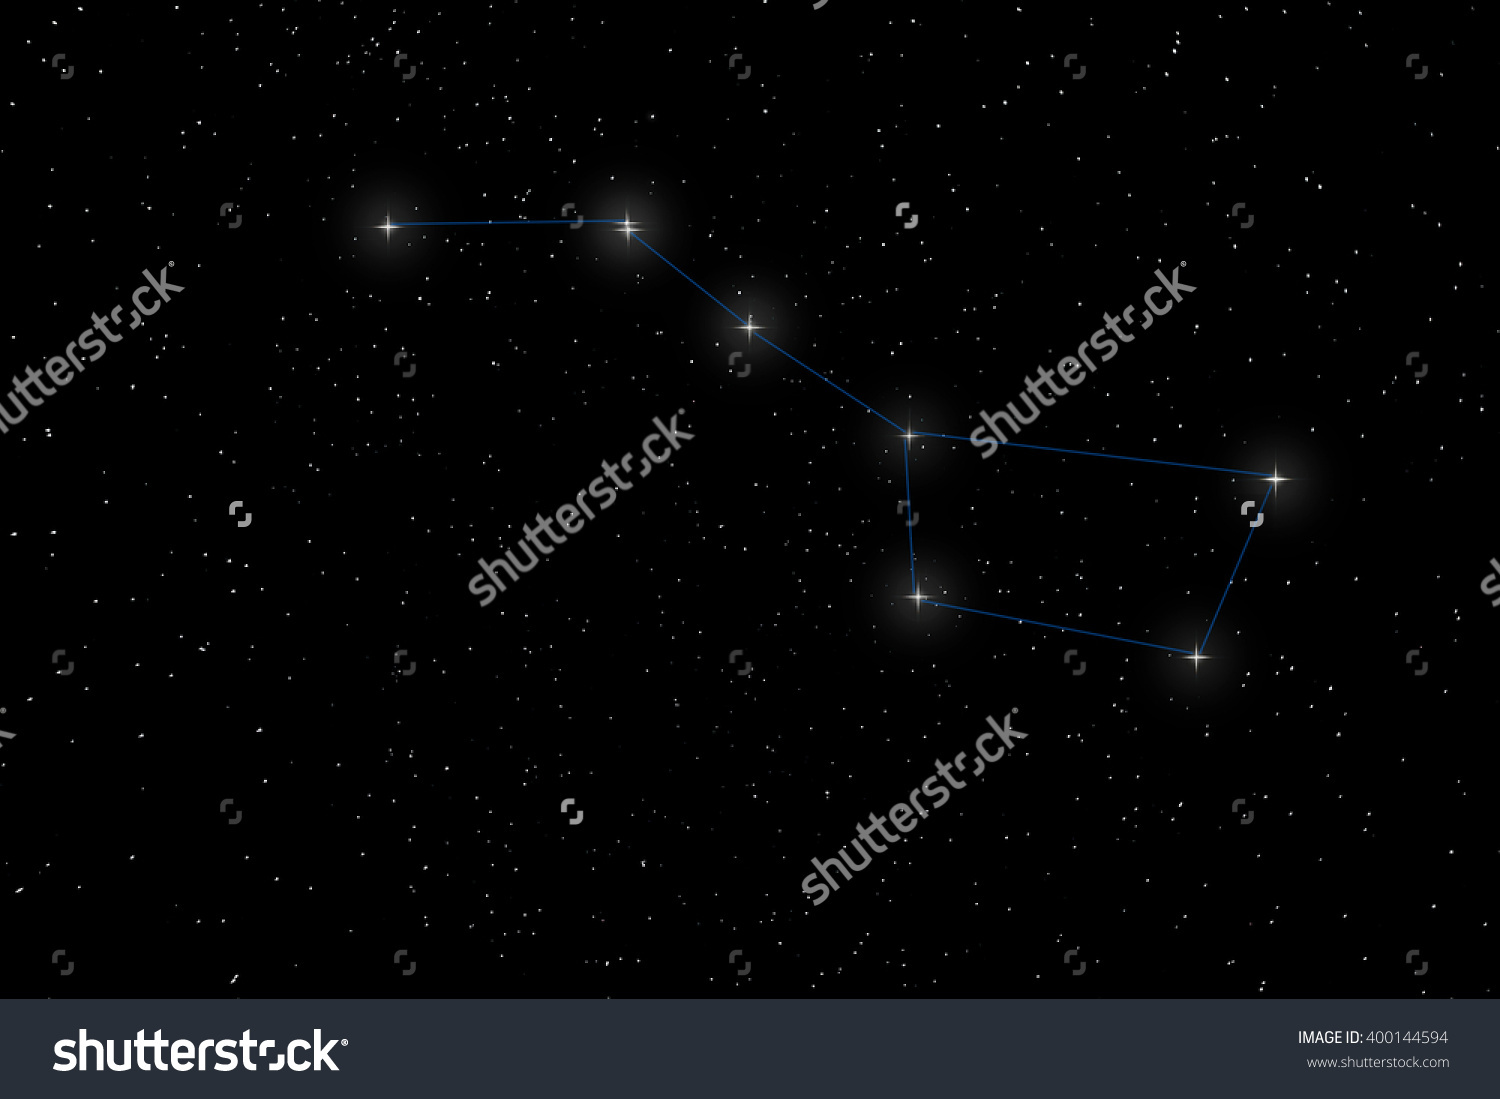 Big Dipper Constellation, Ursa Major, The Great Bear With.